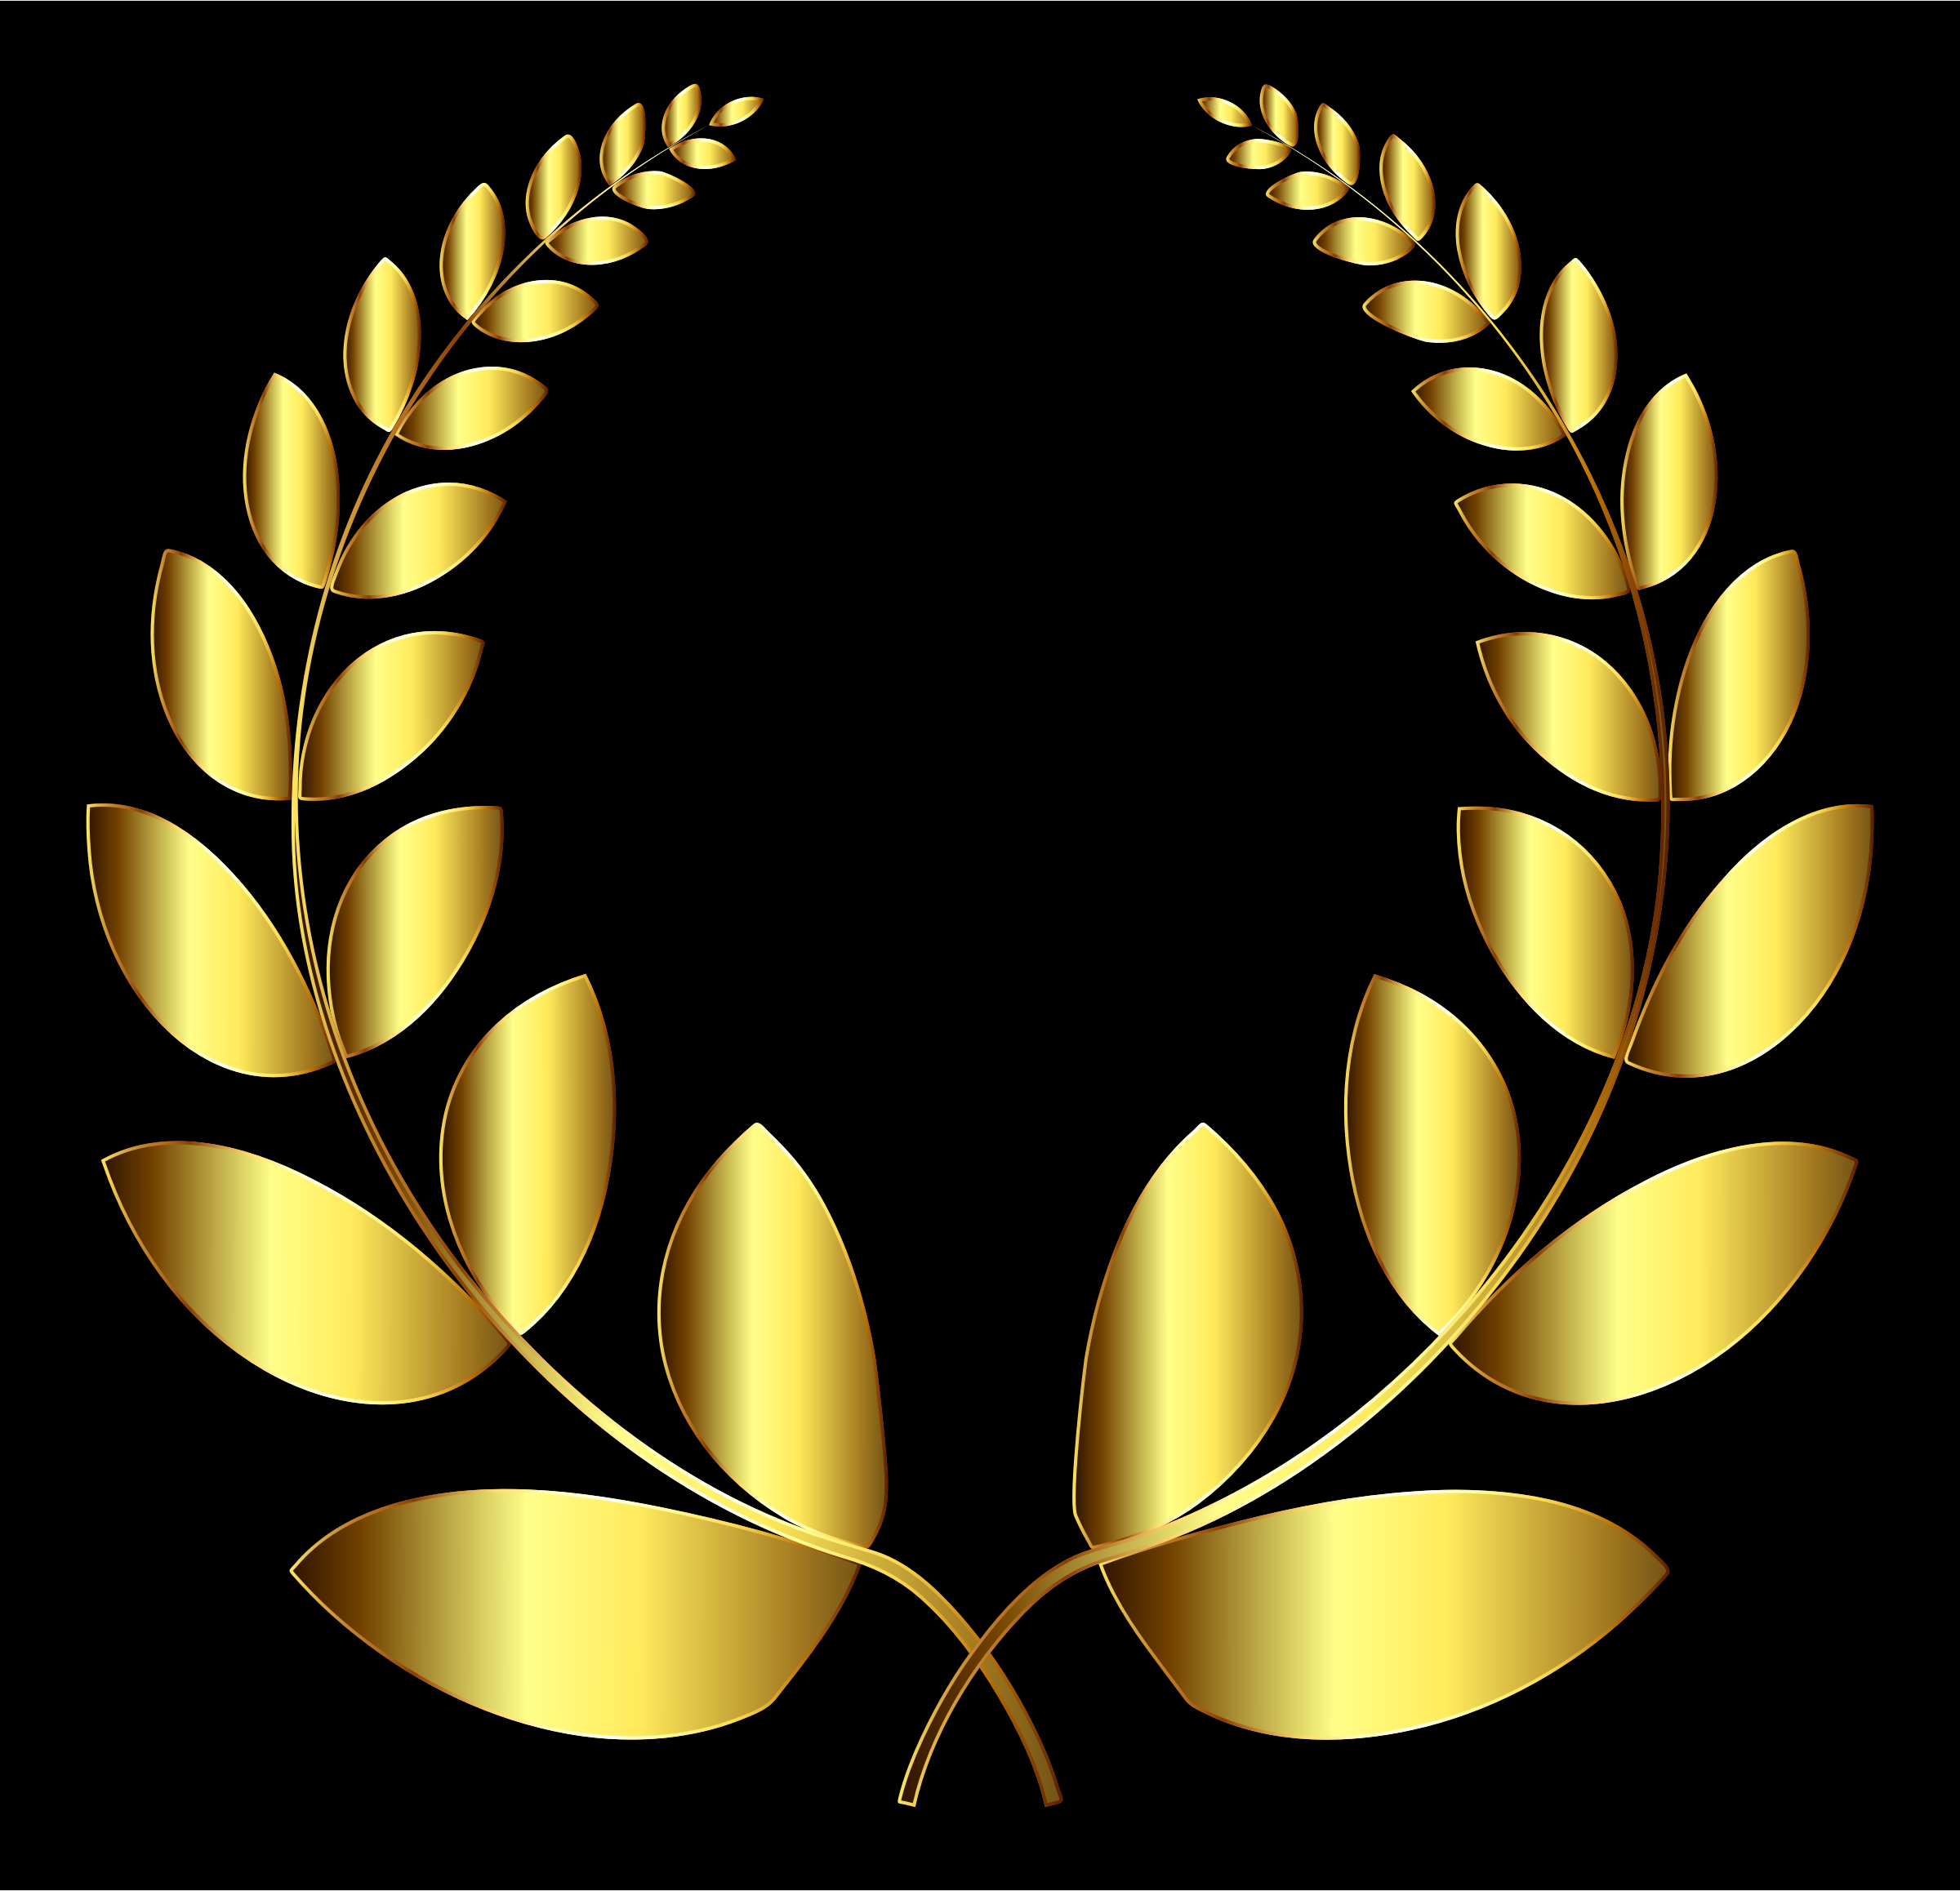 Gold Laurel Wreath 4 by GDJ